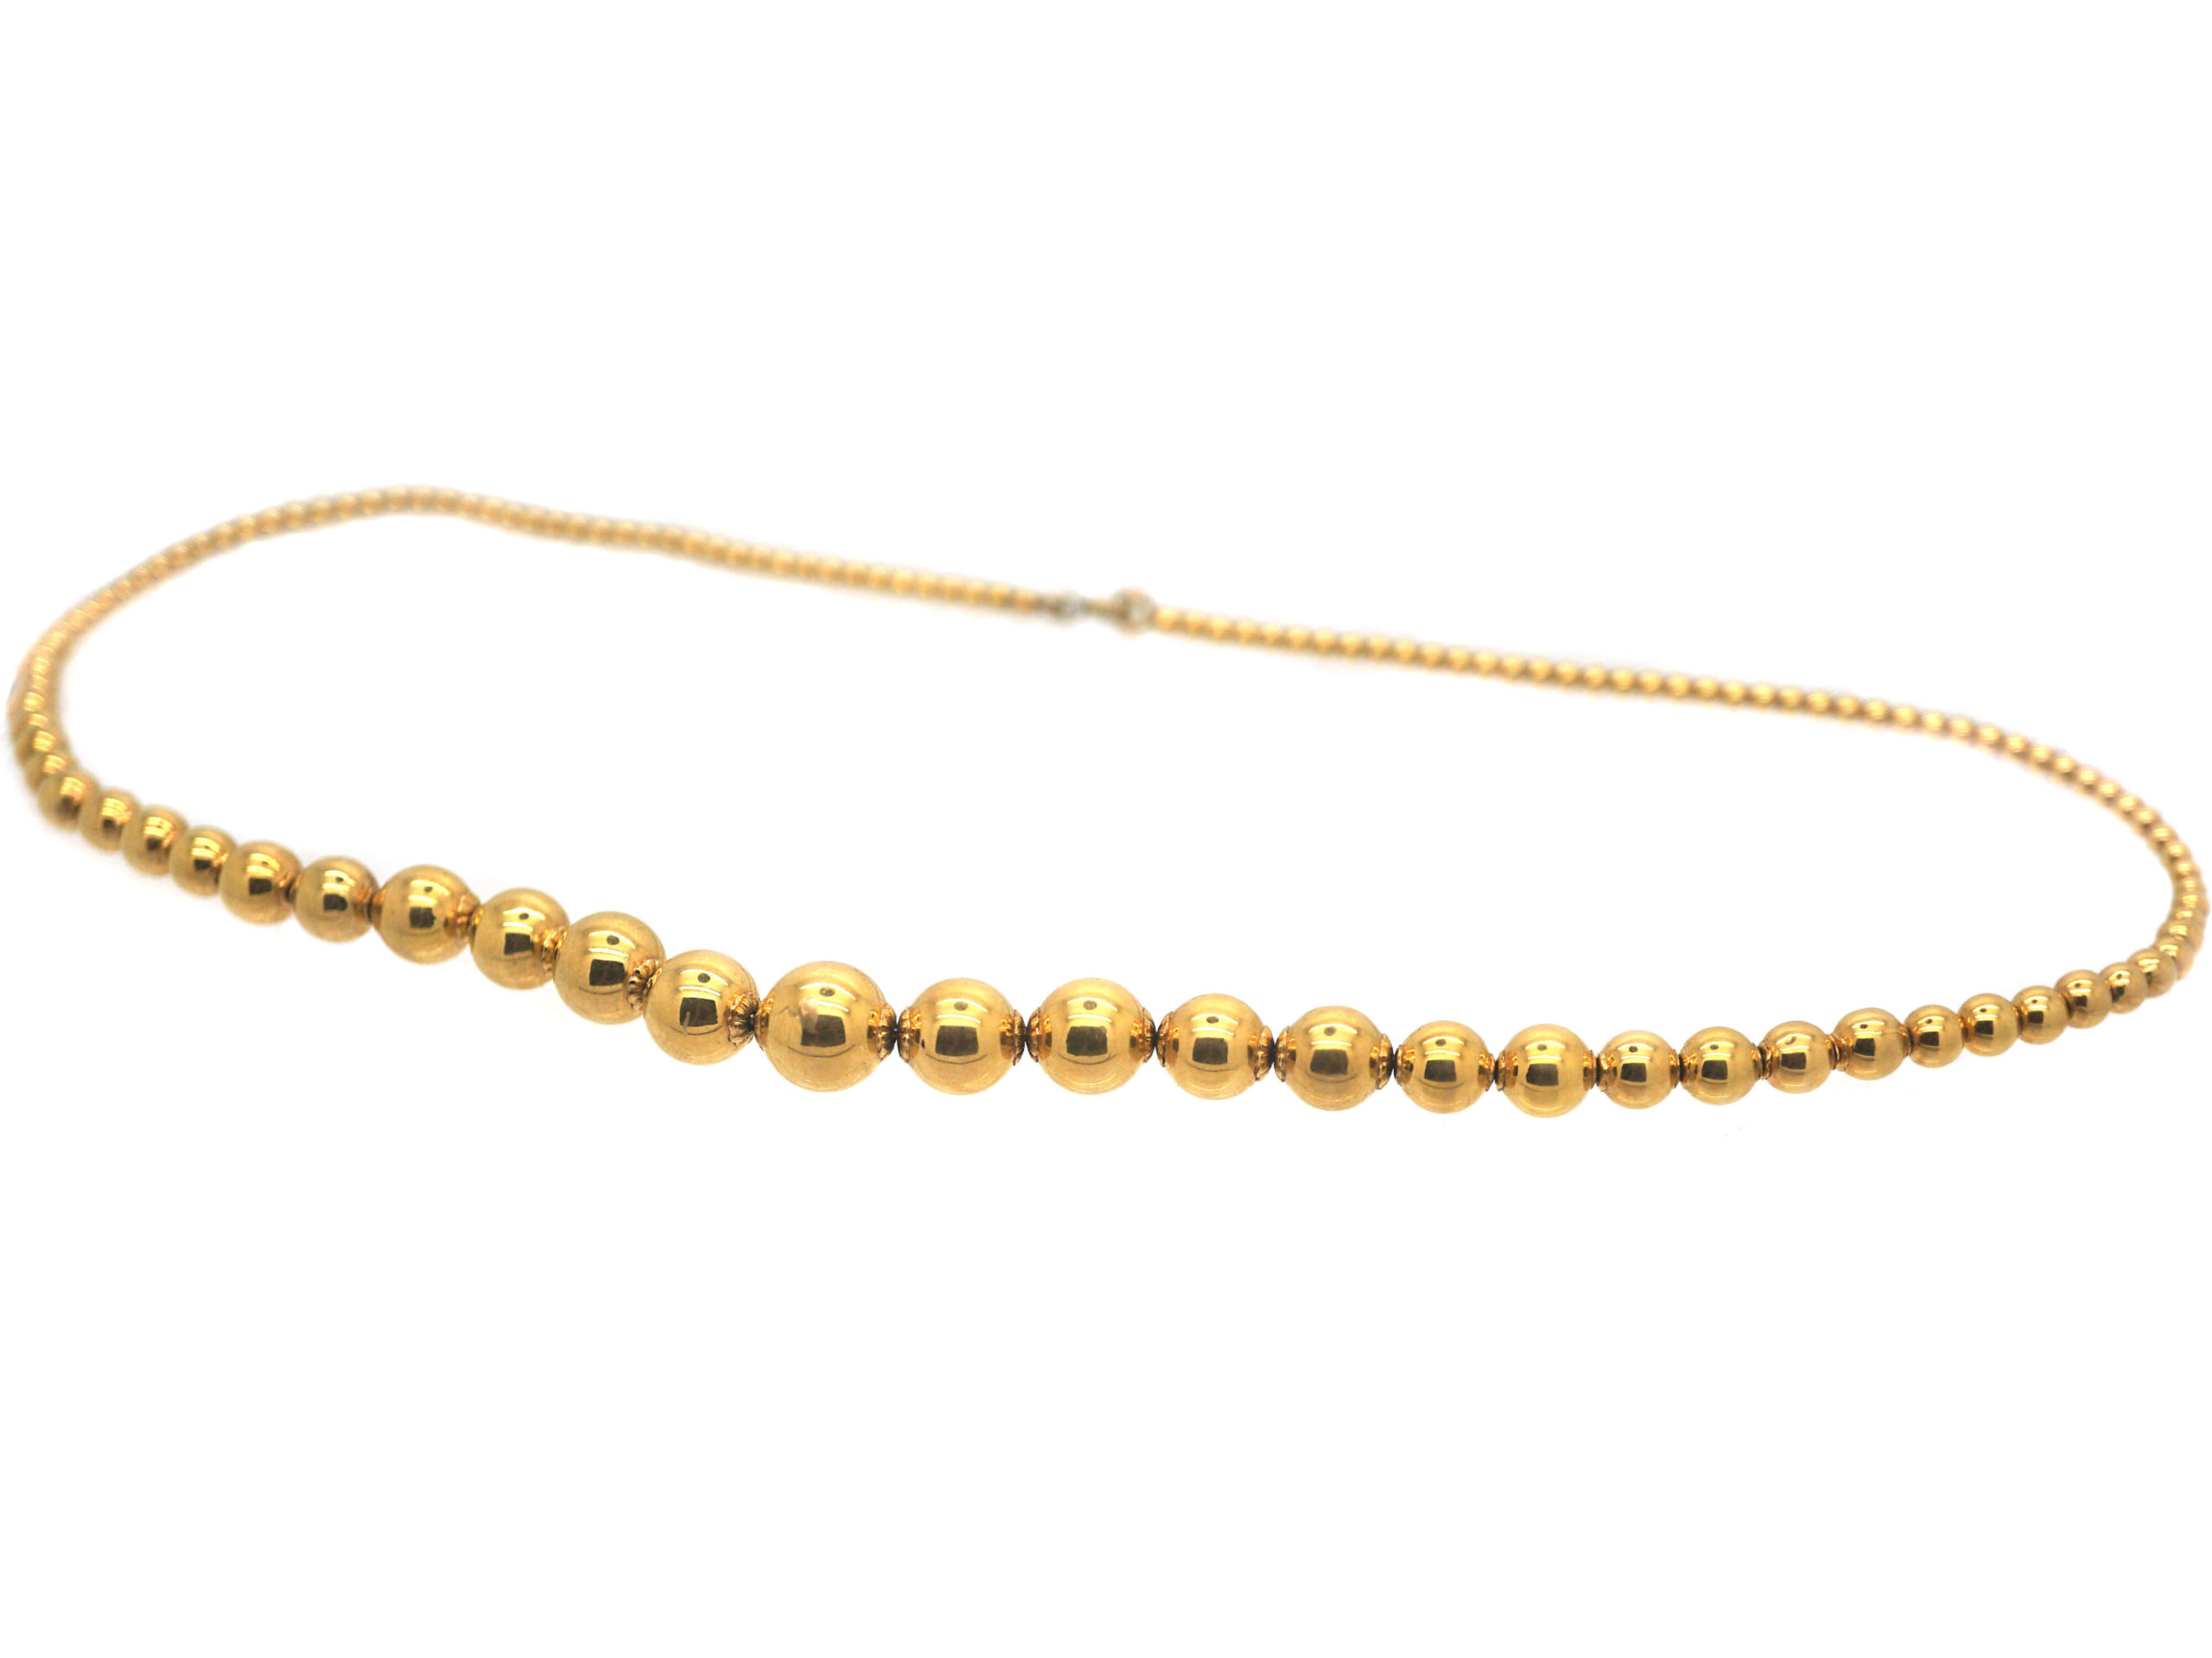 French Gold Graded Beads Necklace